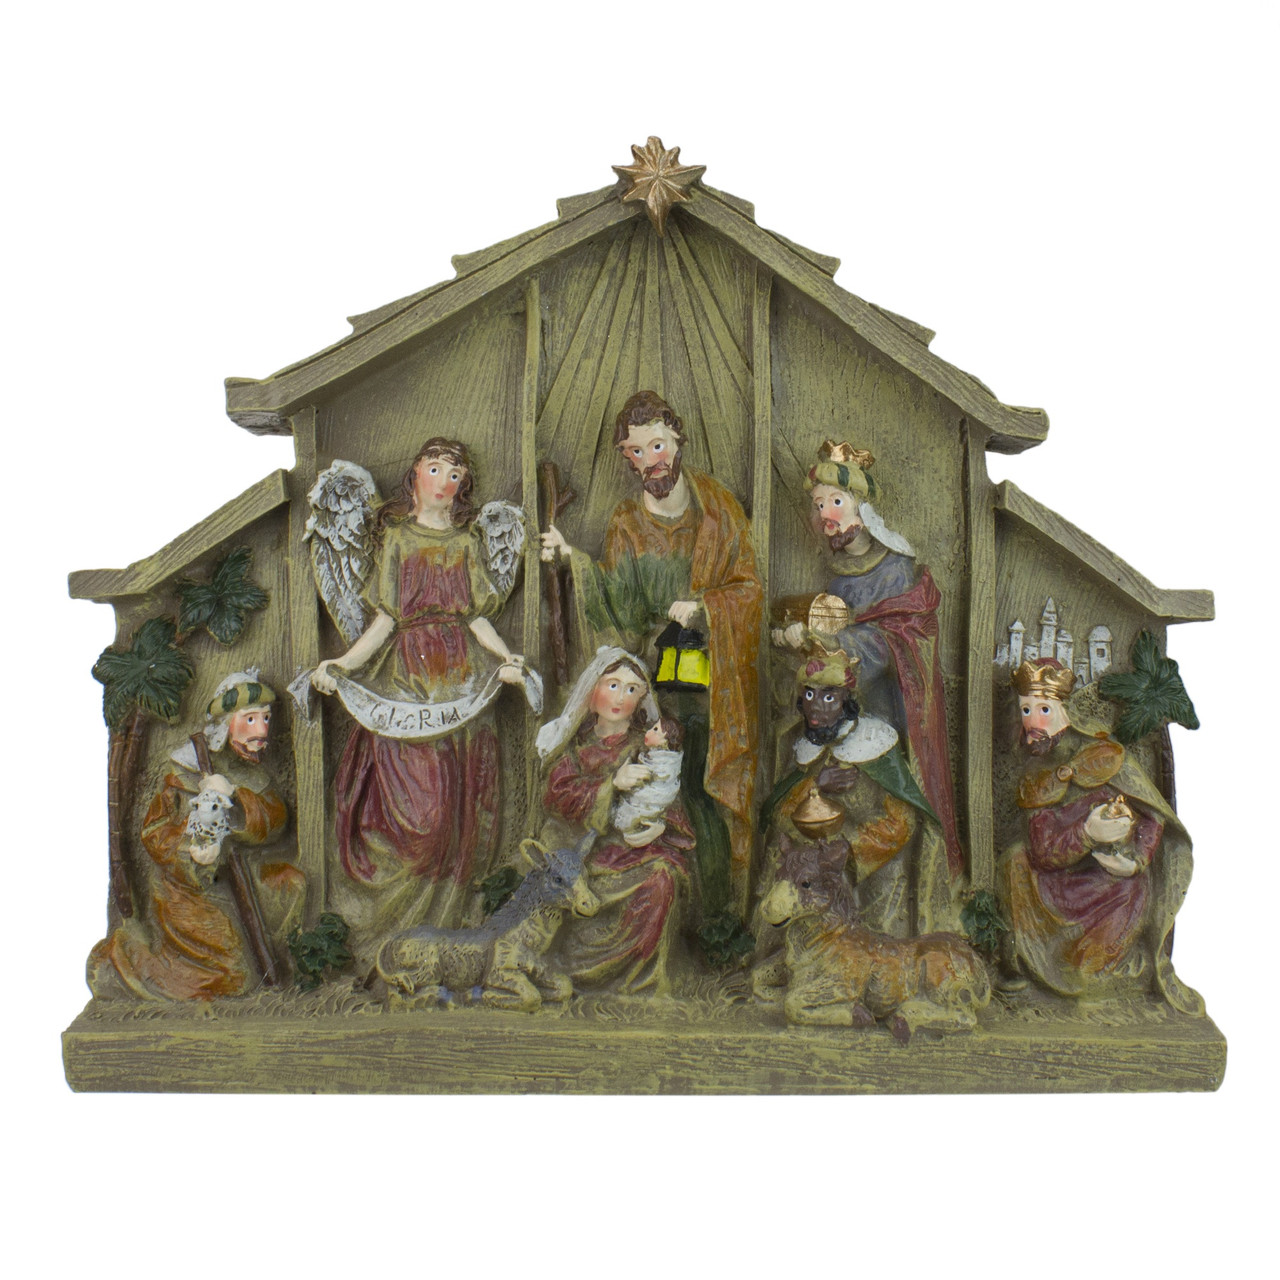 9 75 Tabletop Nativity Scene Christmas Figure Decoration Christmas Central